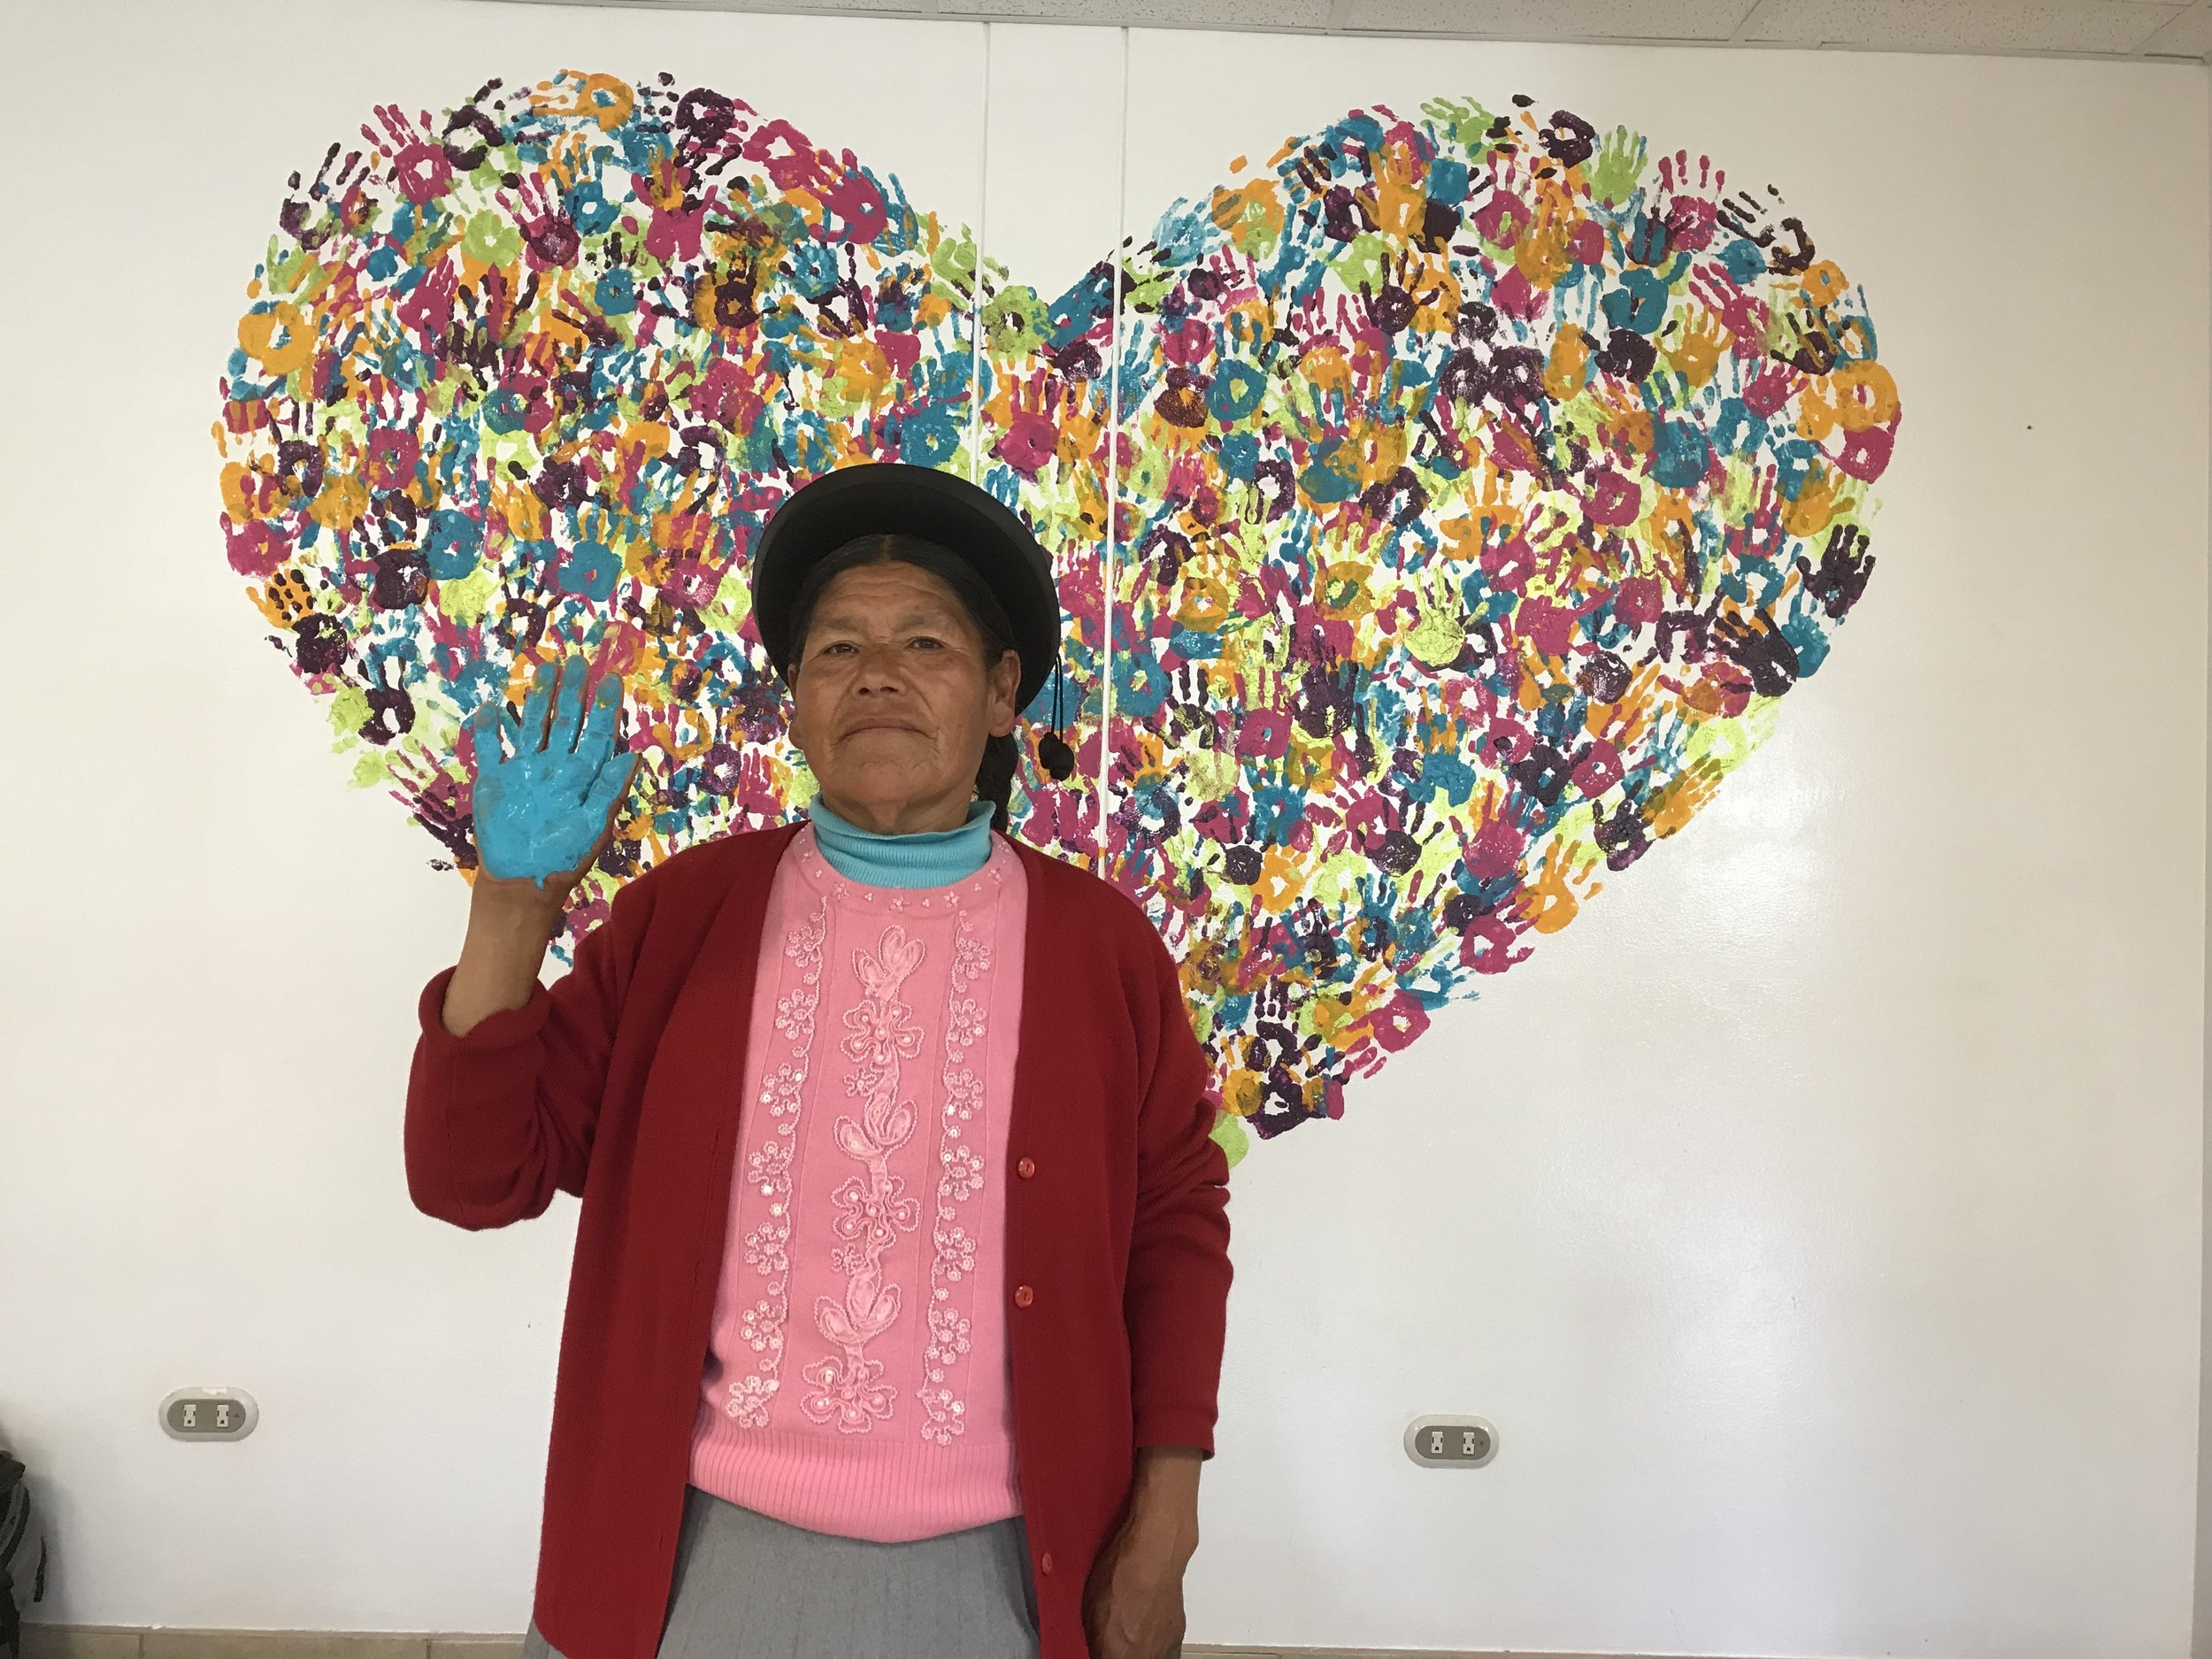 It was really special to see our heart get filled with so many different hands. Everyone from children, and patients, to staff, and missionaries and their families all came to be kid for a little moment, dip their hand in paint and find their place on this big heart. There was definitely a spirit of joy that filled the hospital today. Everyone laughing and some even trying to place their hand full of paint of their coworkers or friend. It really brought people together in a way Julian and I didn't plan on.